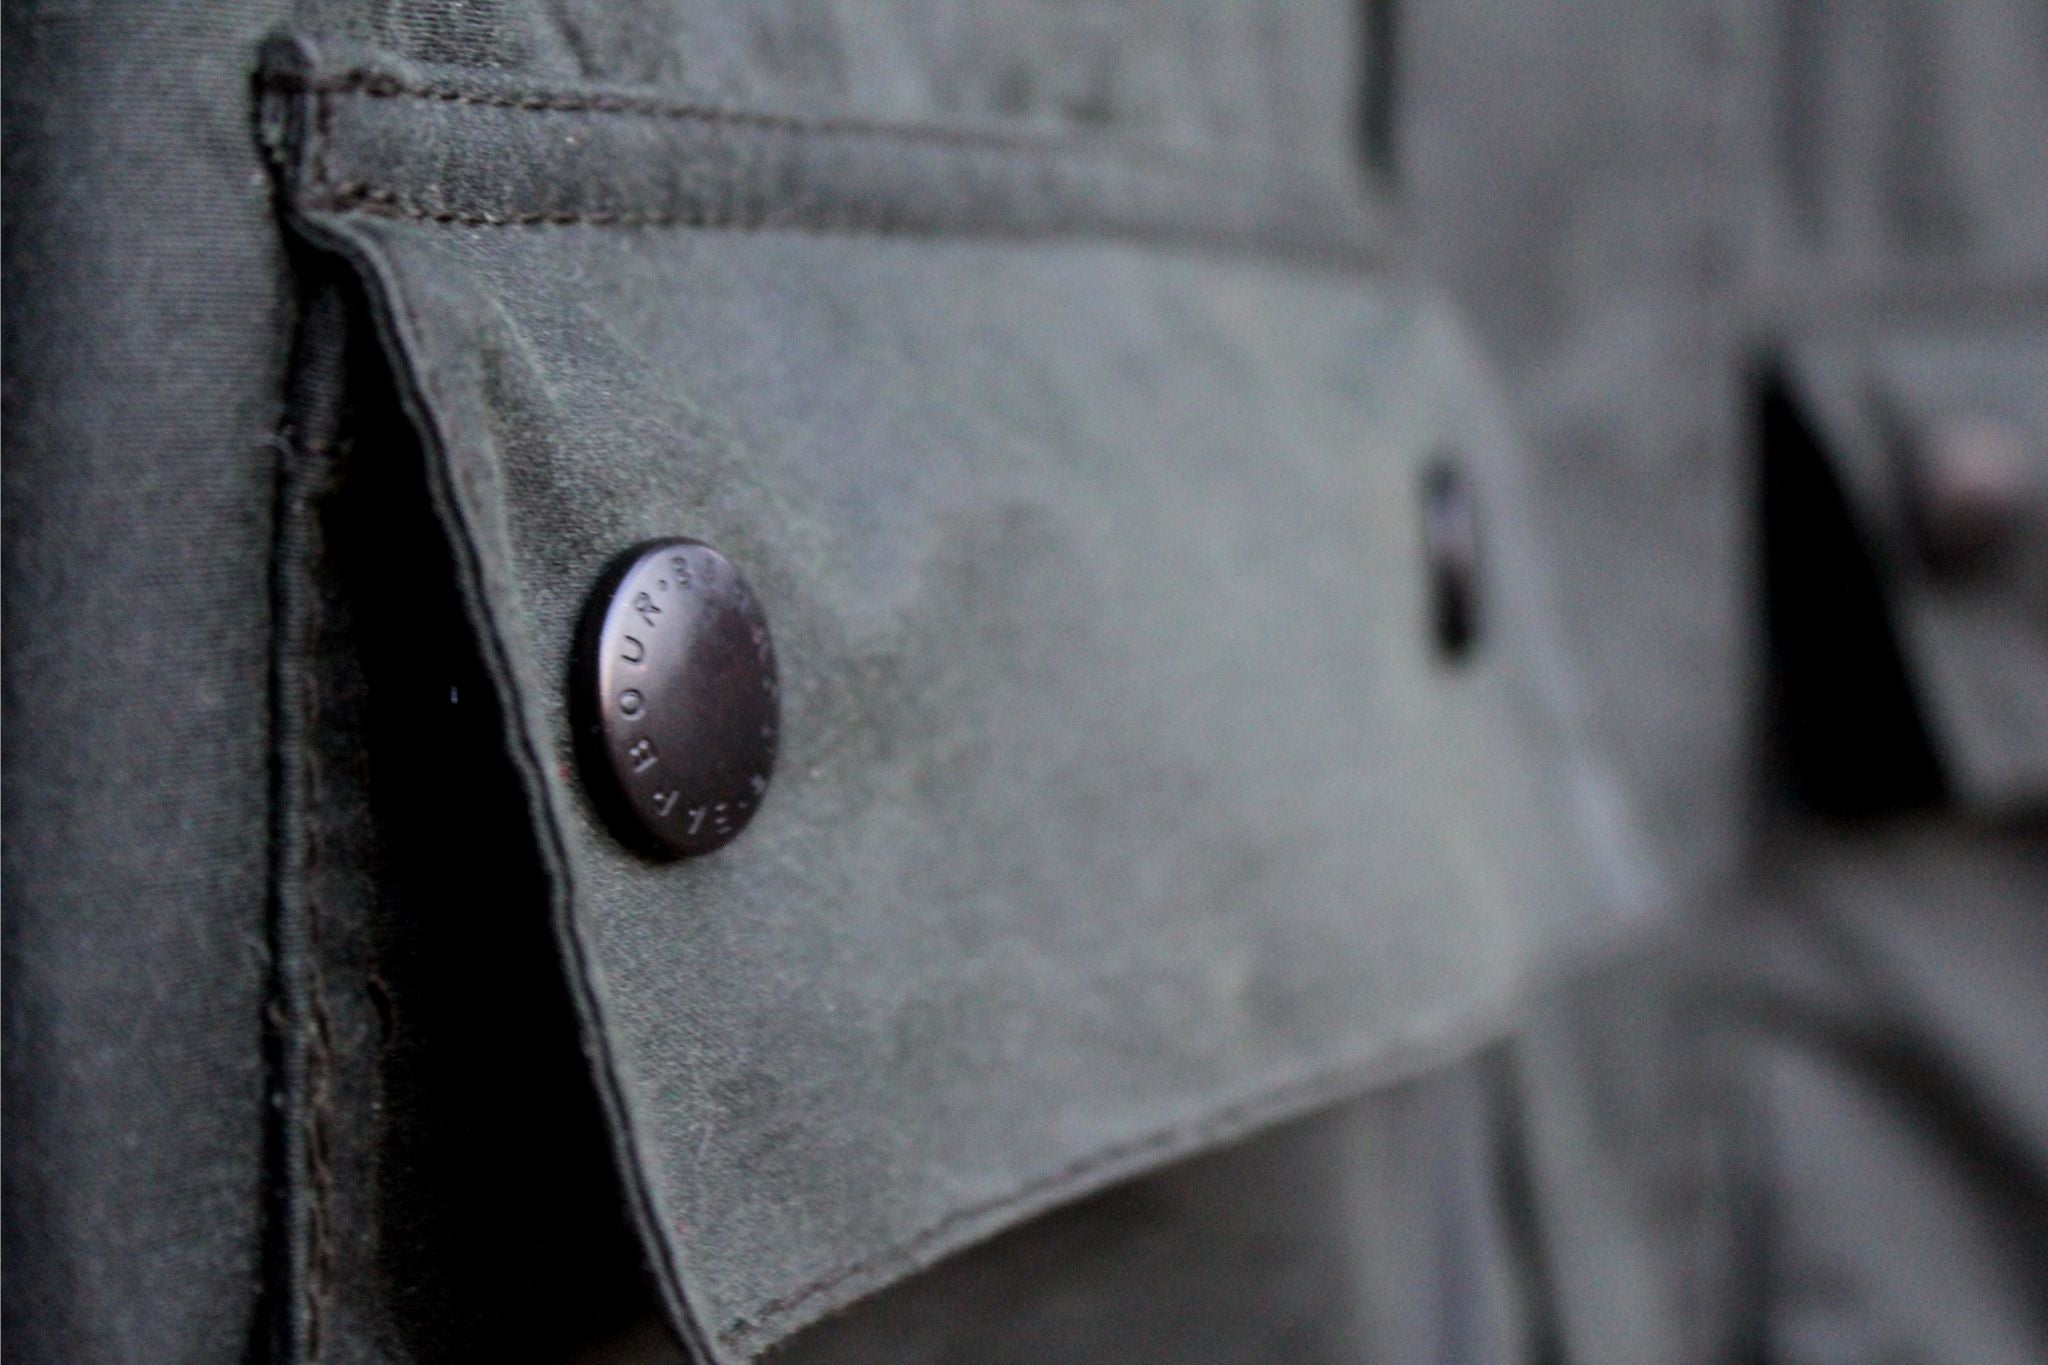 Barbour Bedale SL - waxed cotton cloth and pocket details